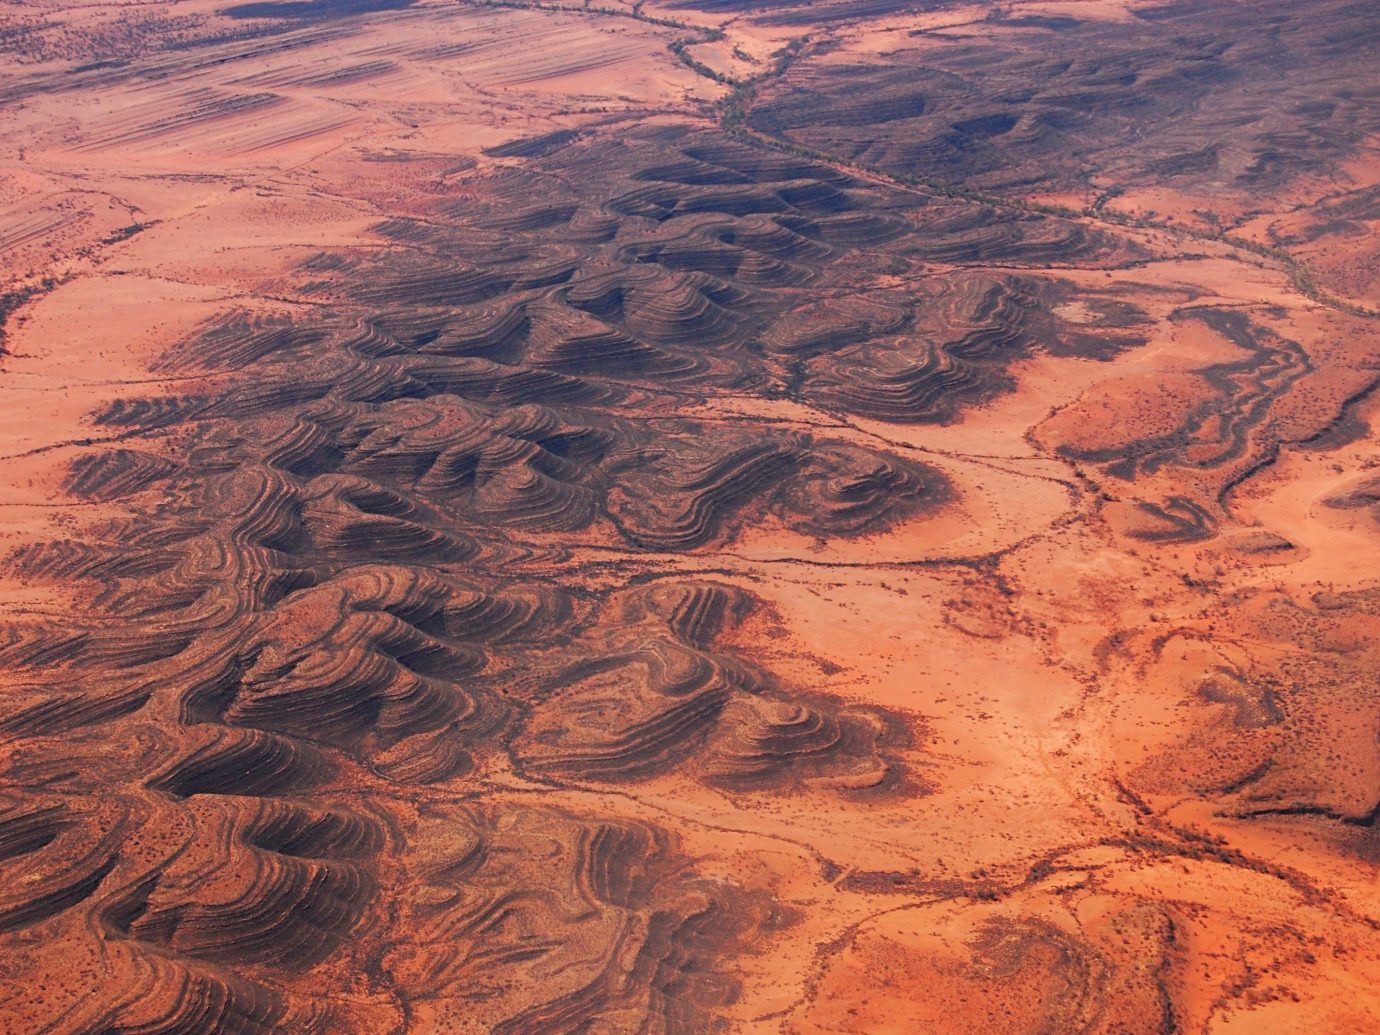 Trip Ideas valley canyon Nature landform geographical feature natural environment soil landscape aerial photography plain Desert geology rock aeolian landform wadi plateau badlands formation painting